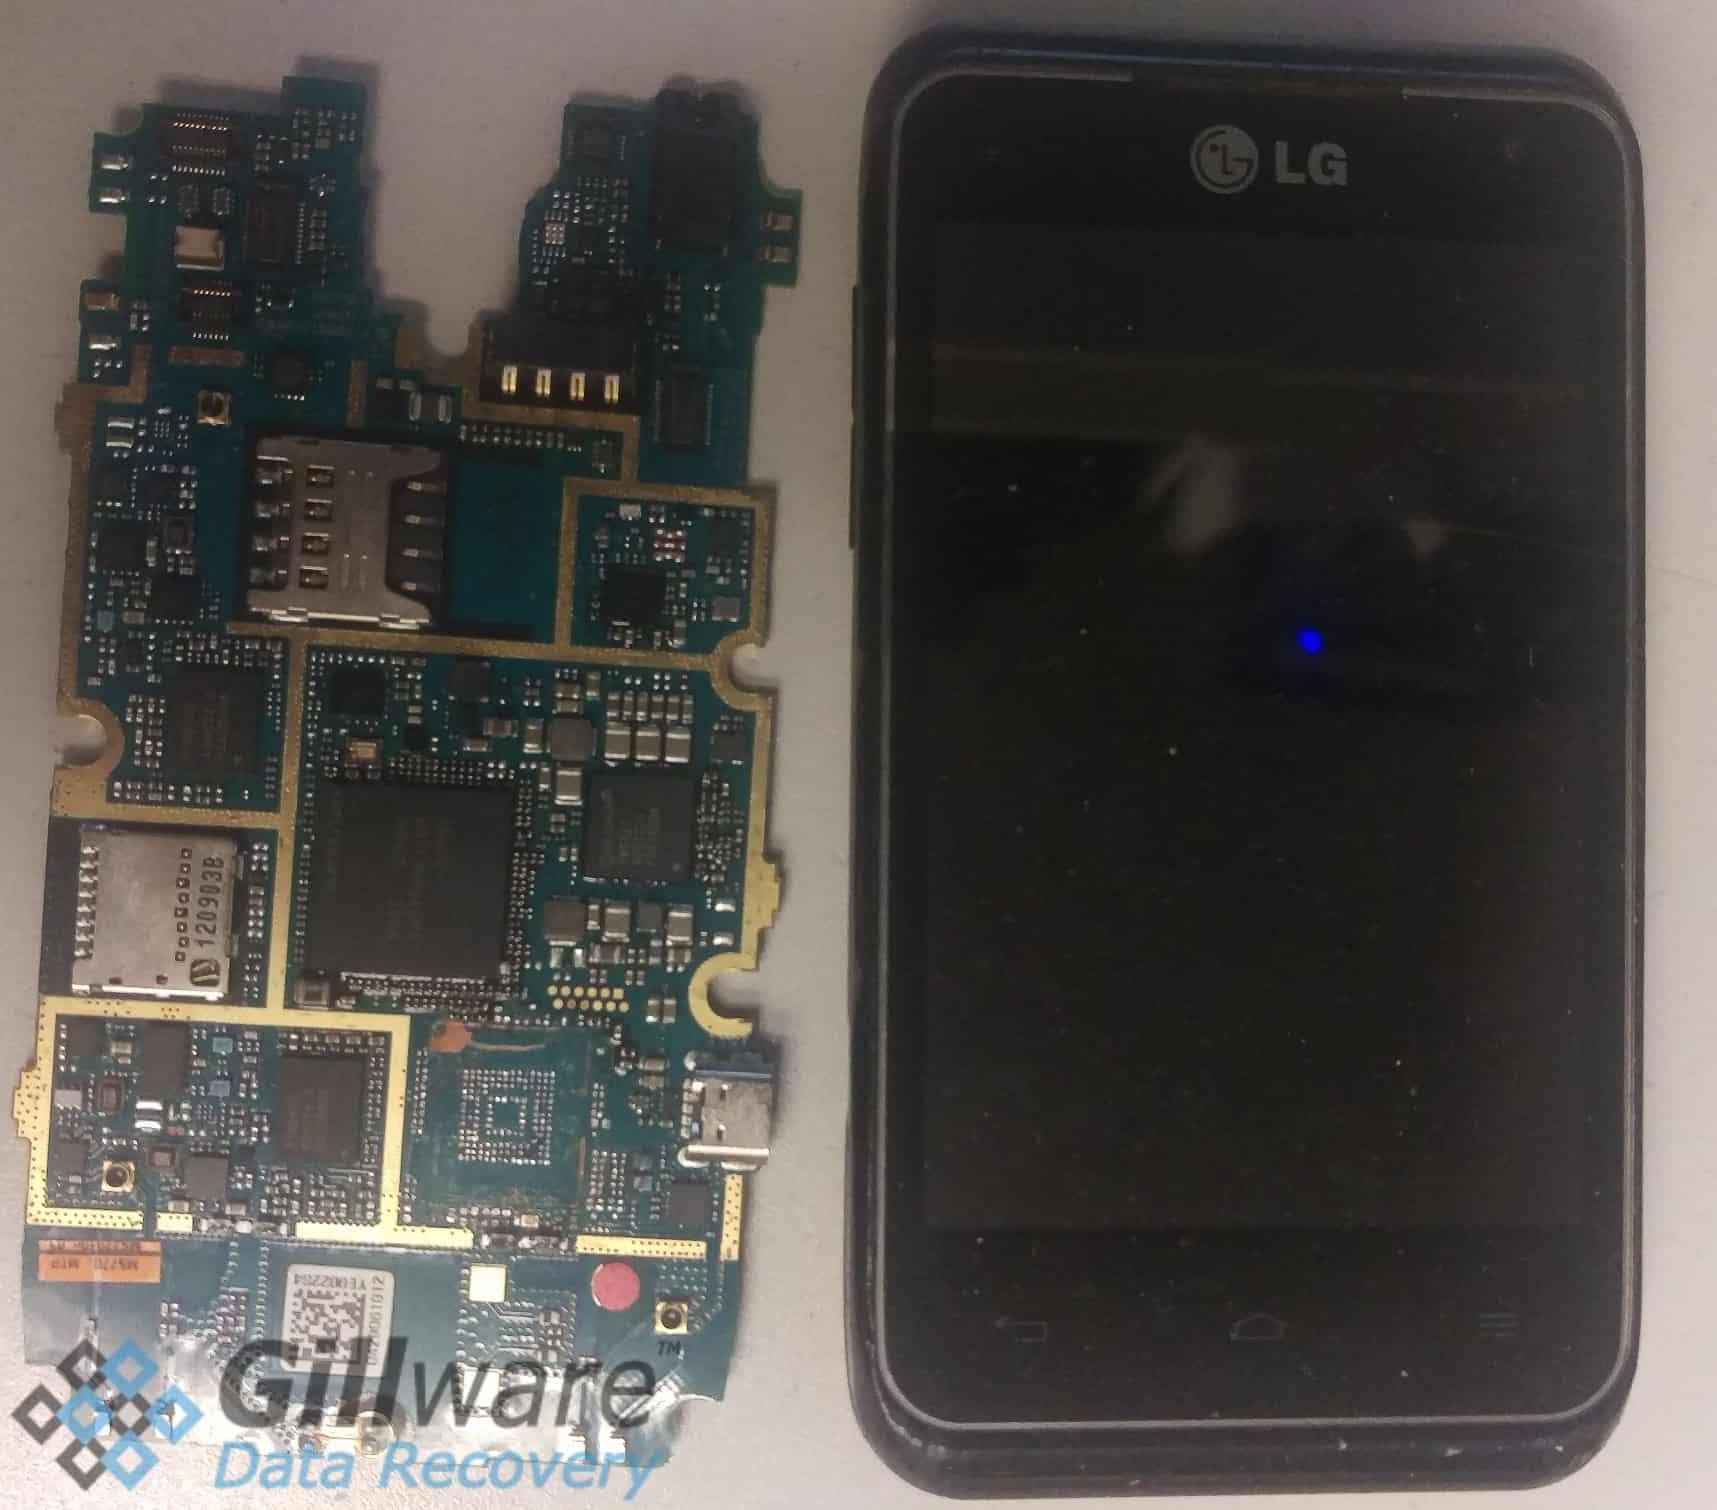 The parts from a LG mobile phone data recovery case